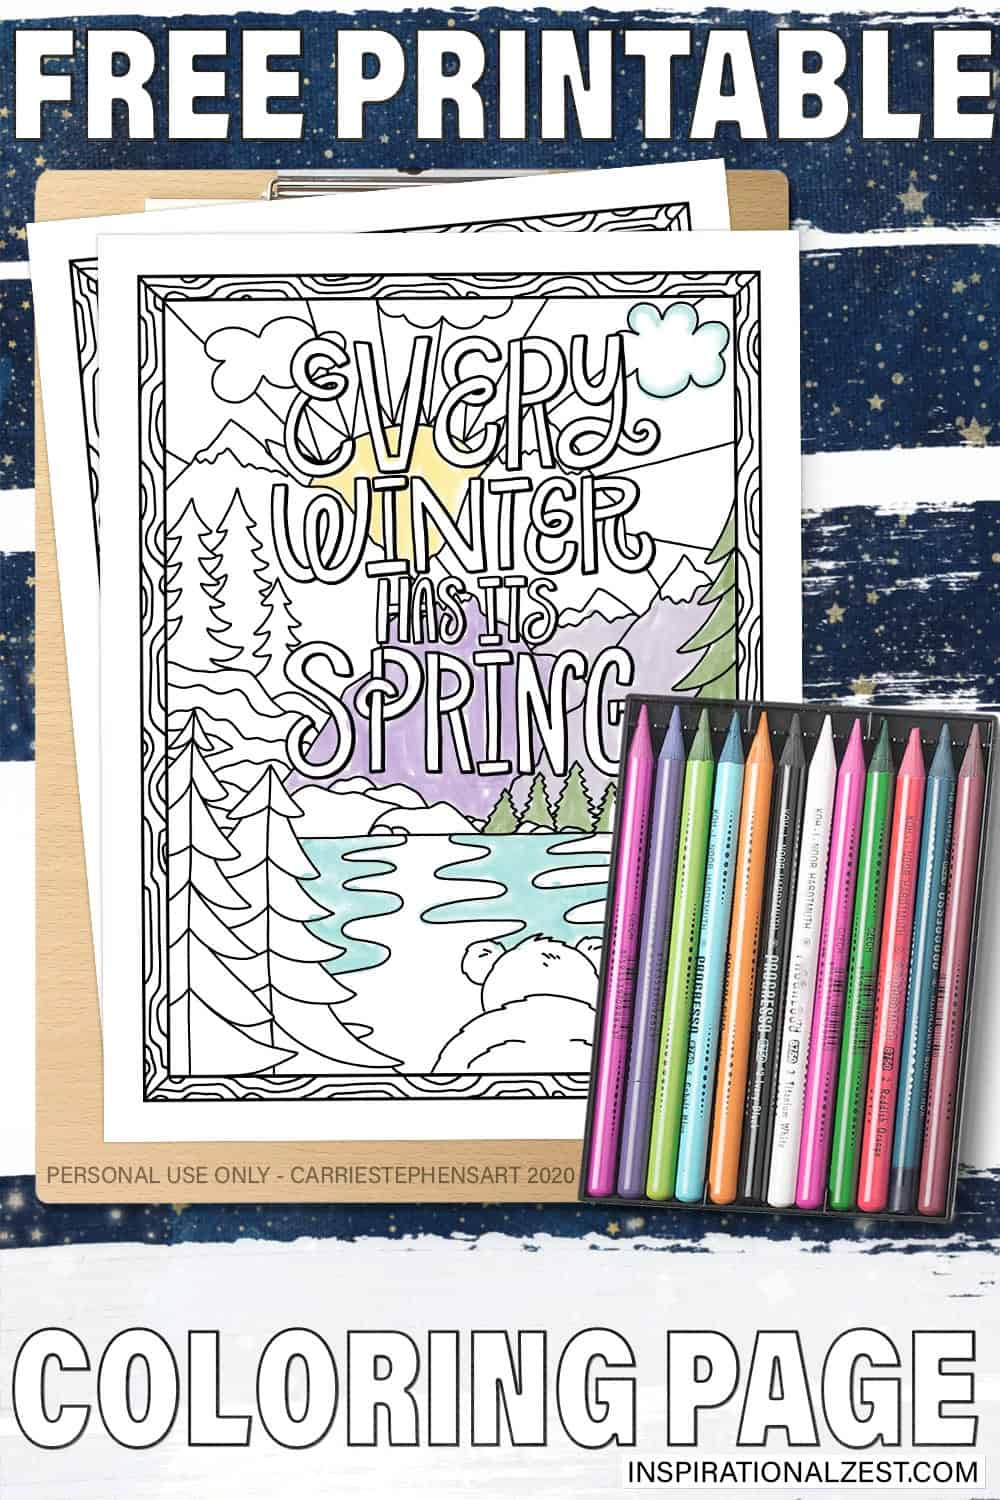 Every Winter Has its Spring | Free Coloring Page Printable